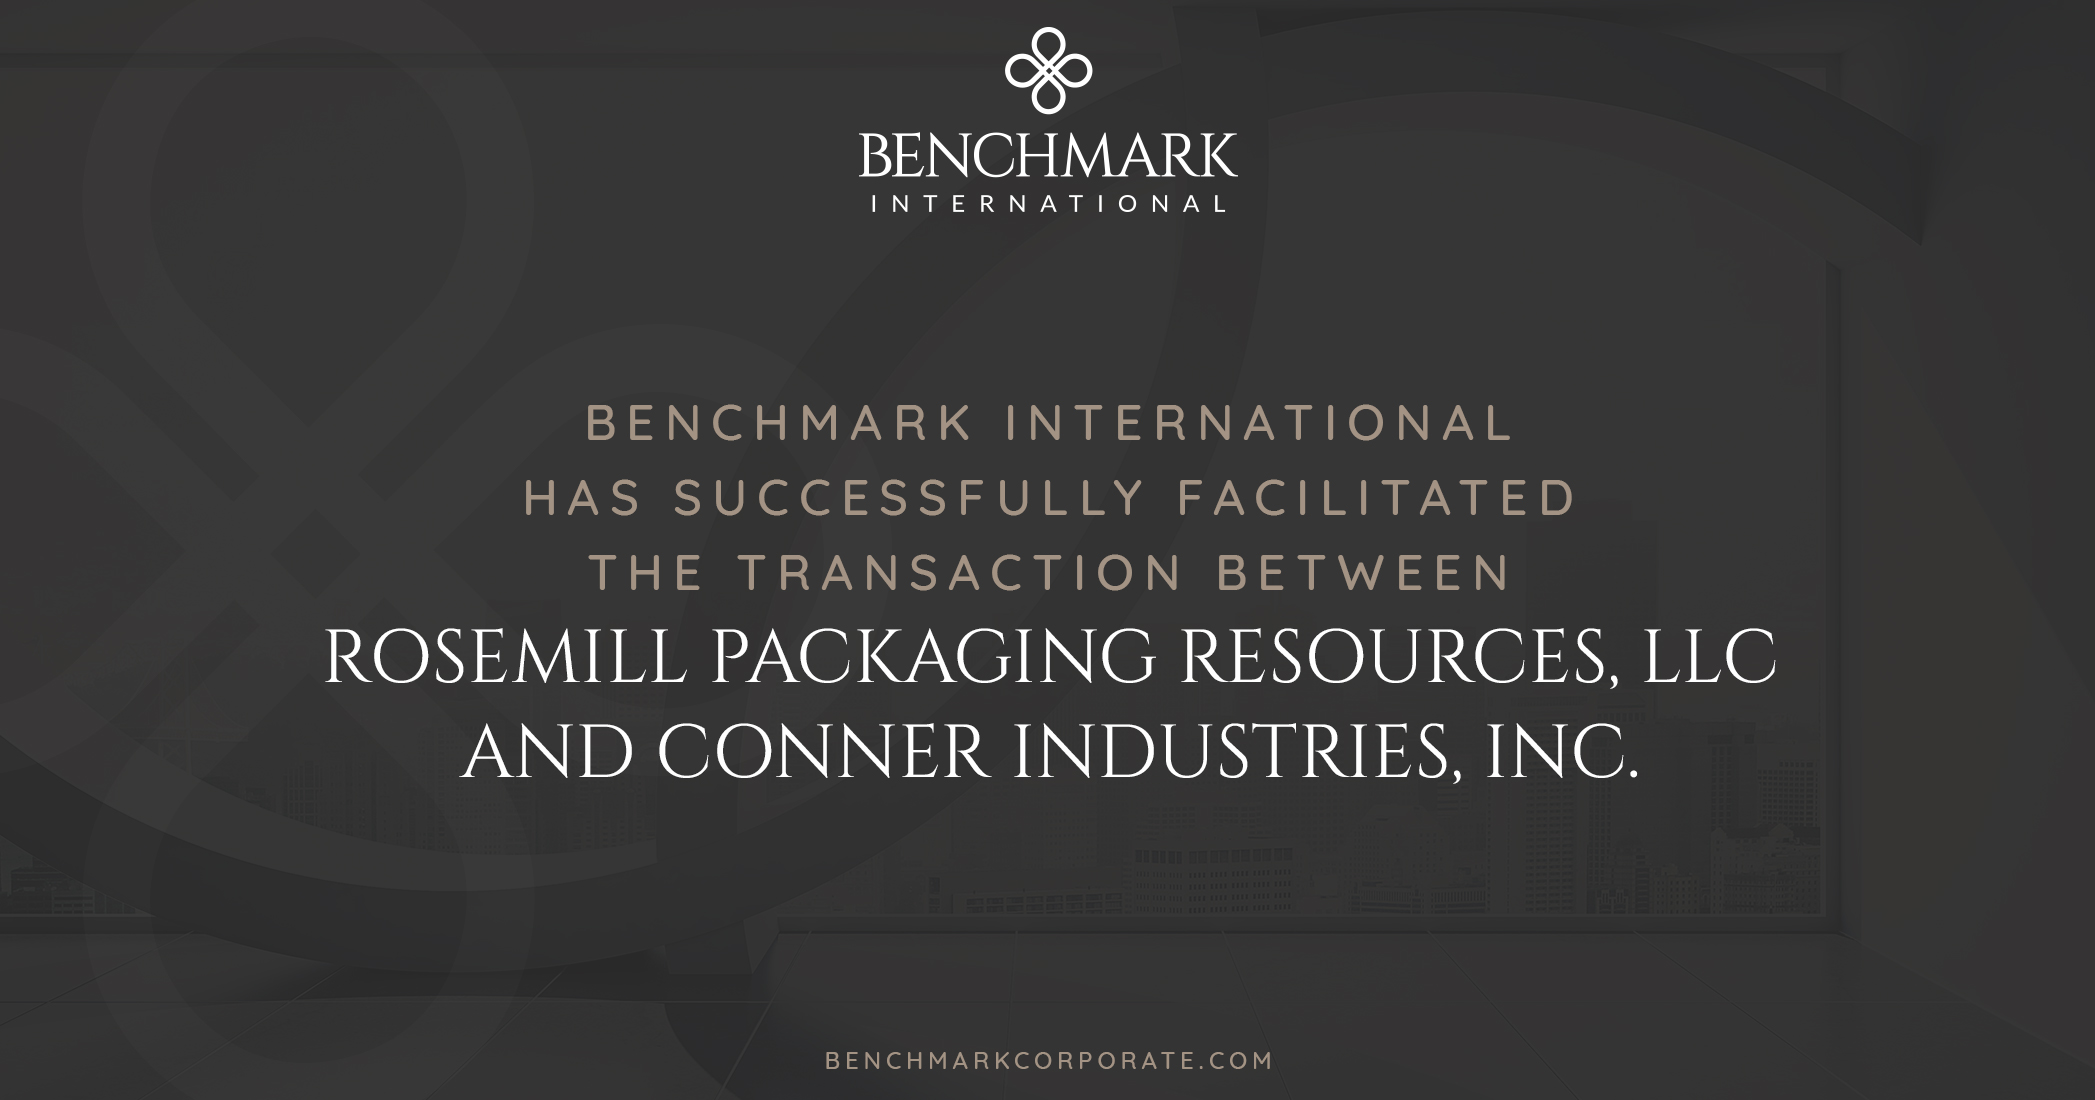 Benchmark International Facilitated the Transaction of RoseMill Packaging Resources, LLC to Conner Industries, Inc.